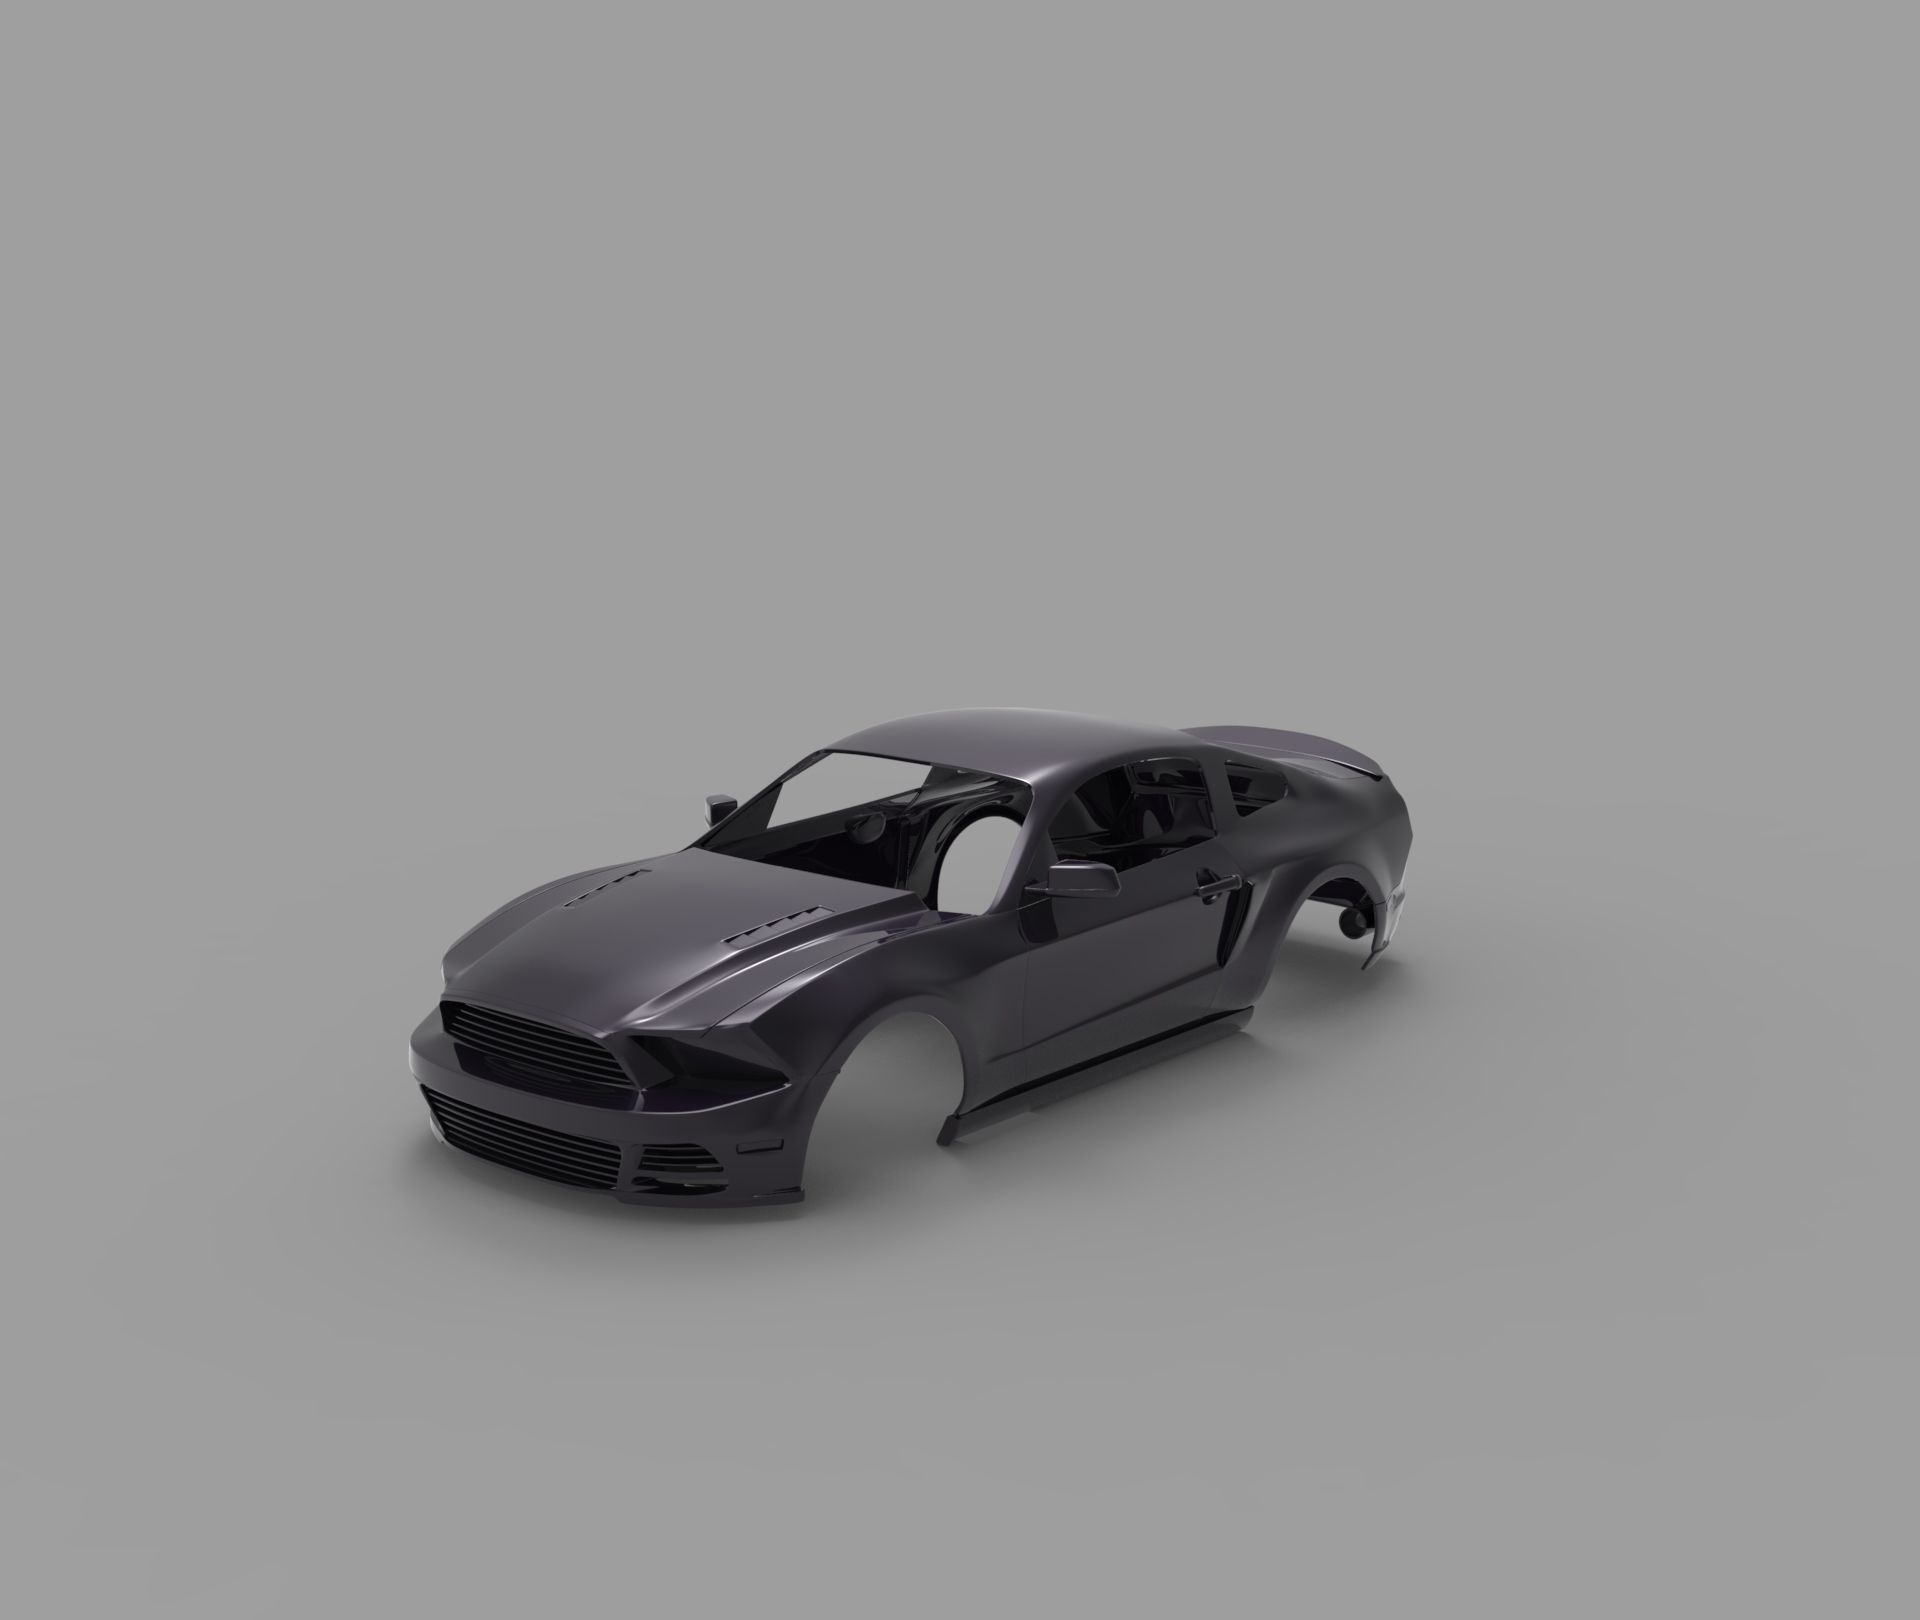 ford mustang 2014 RC body shell